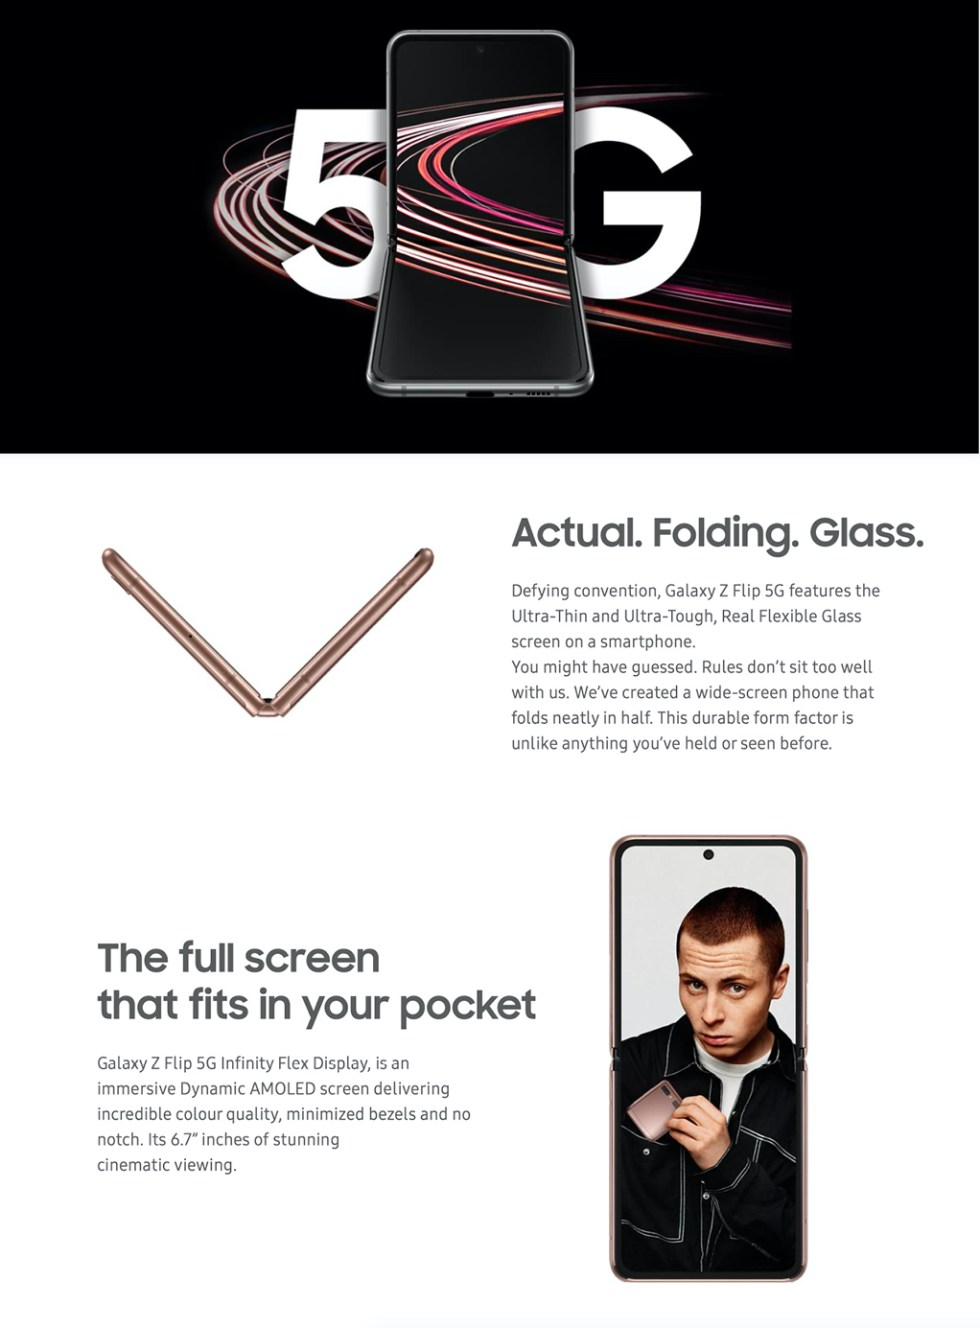 Samsung Galaxy Z Flip 5G Product Features Page 2